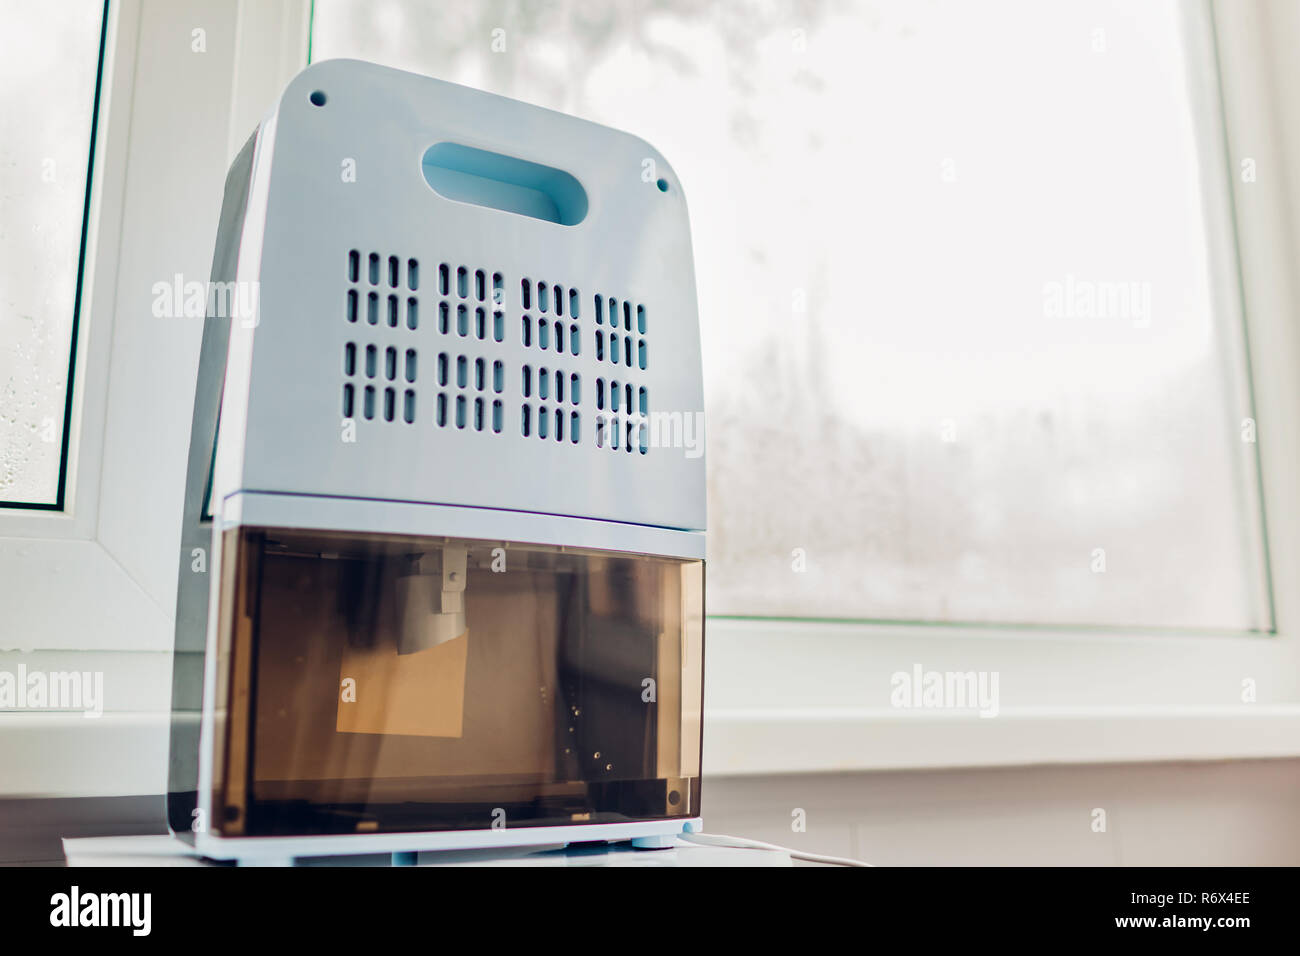 Dehumidifier with touch panel, humidity indicator, uv lamp, air ionizer, water container works by wet window. - Stock Image